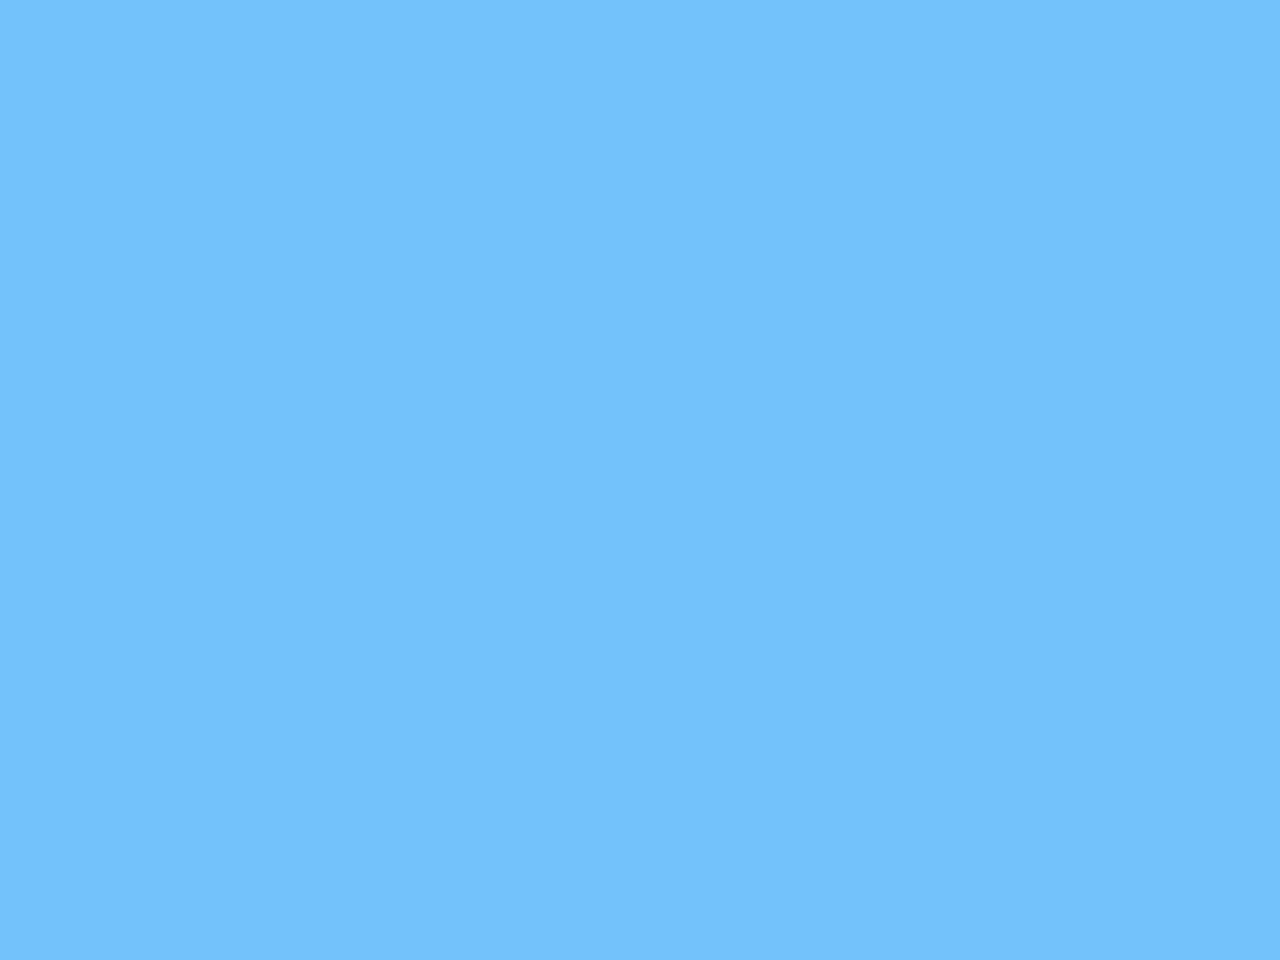 1280x960 Maya Blue Solid Color Background